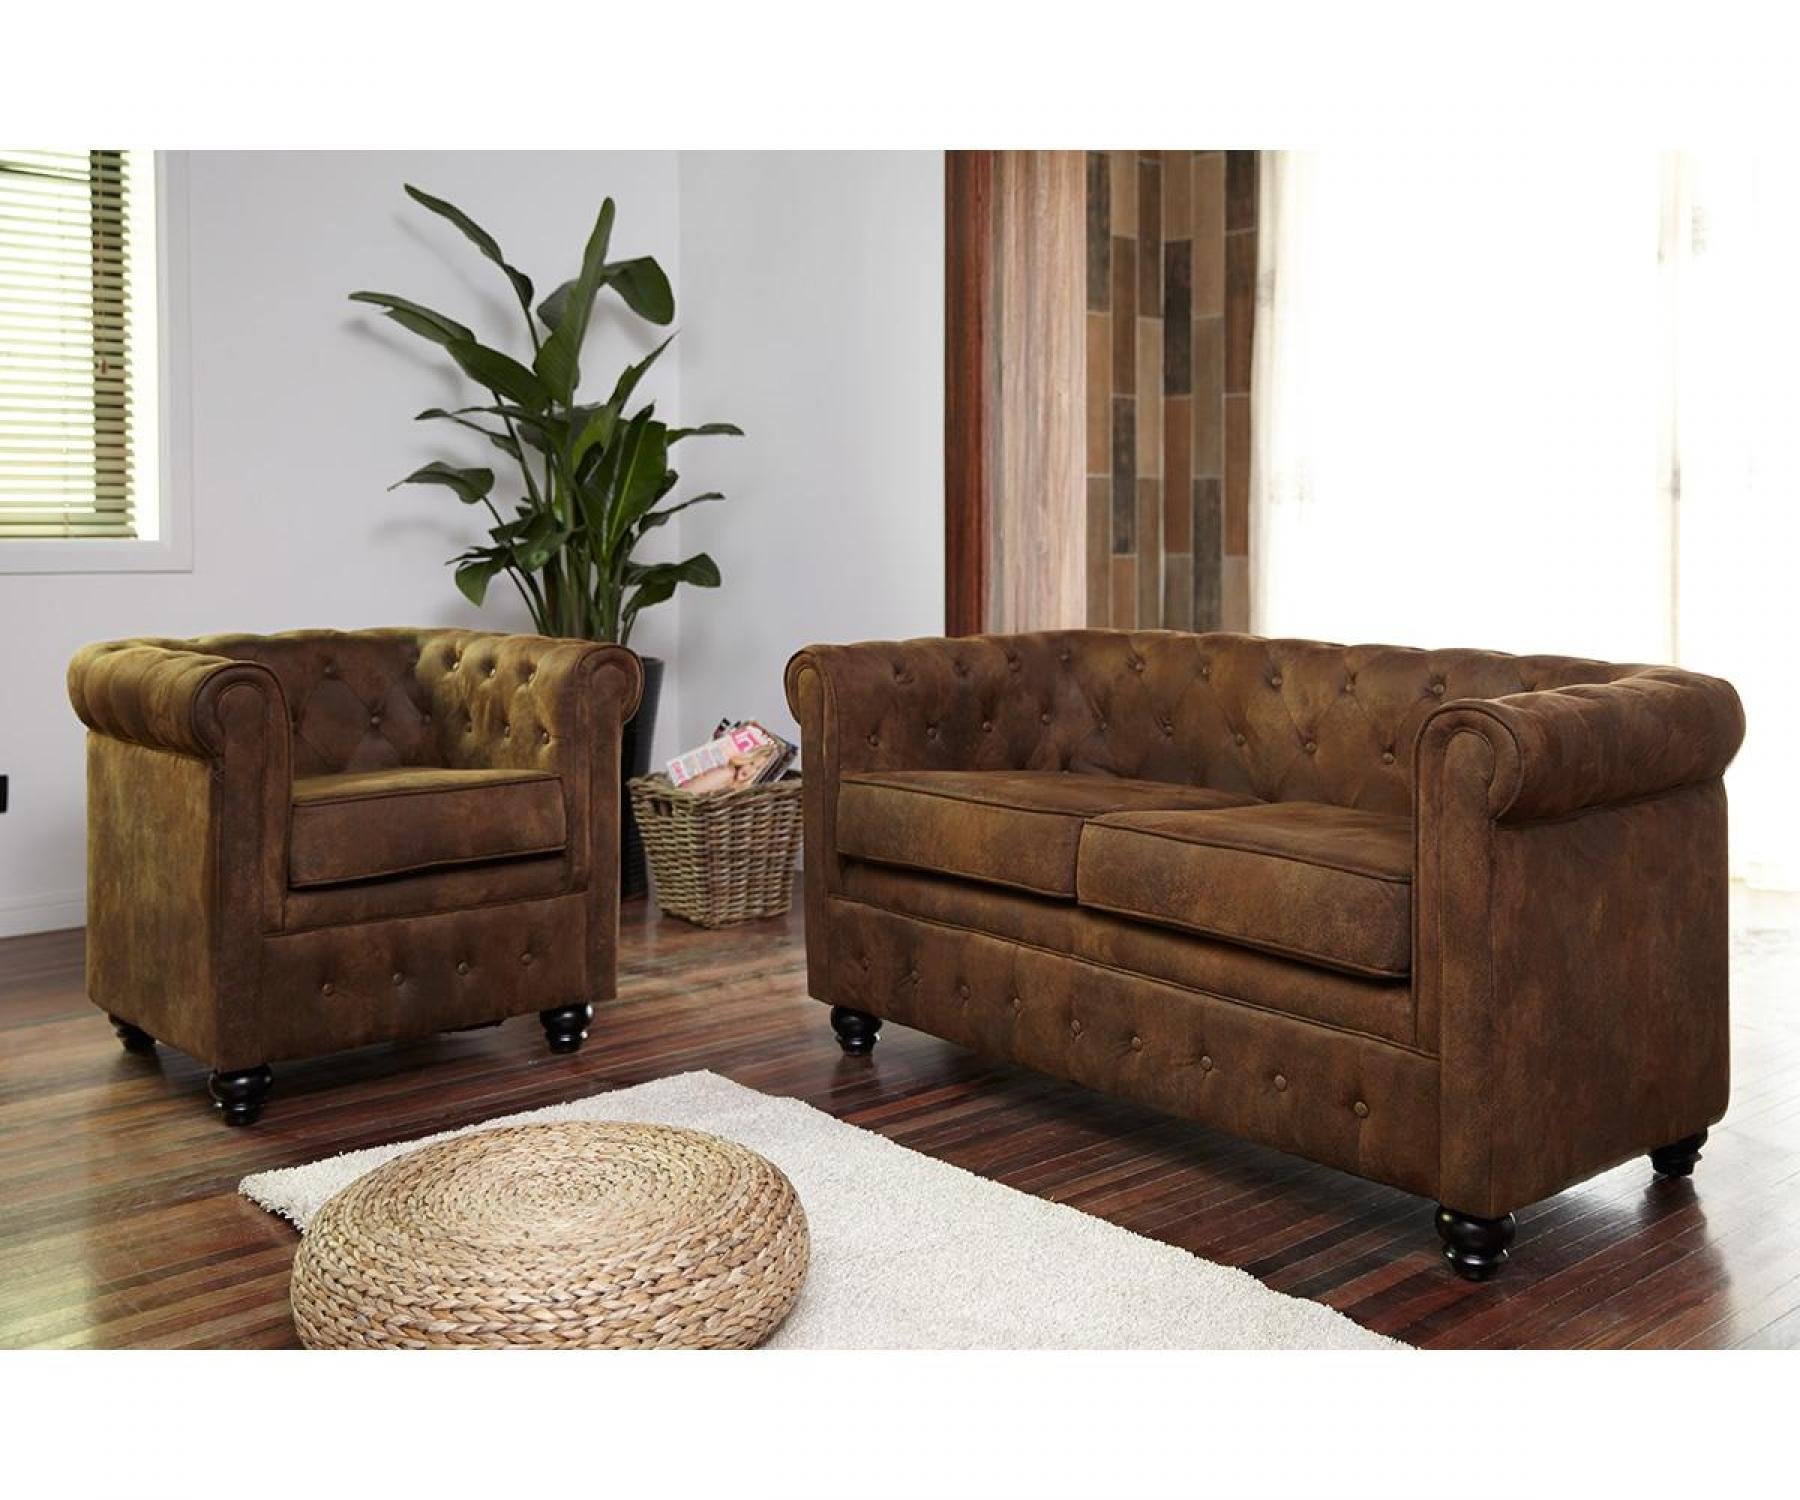 Canape chesterfield cuir pas cher 28 images photos for Canape cuir pas cher